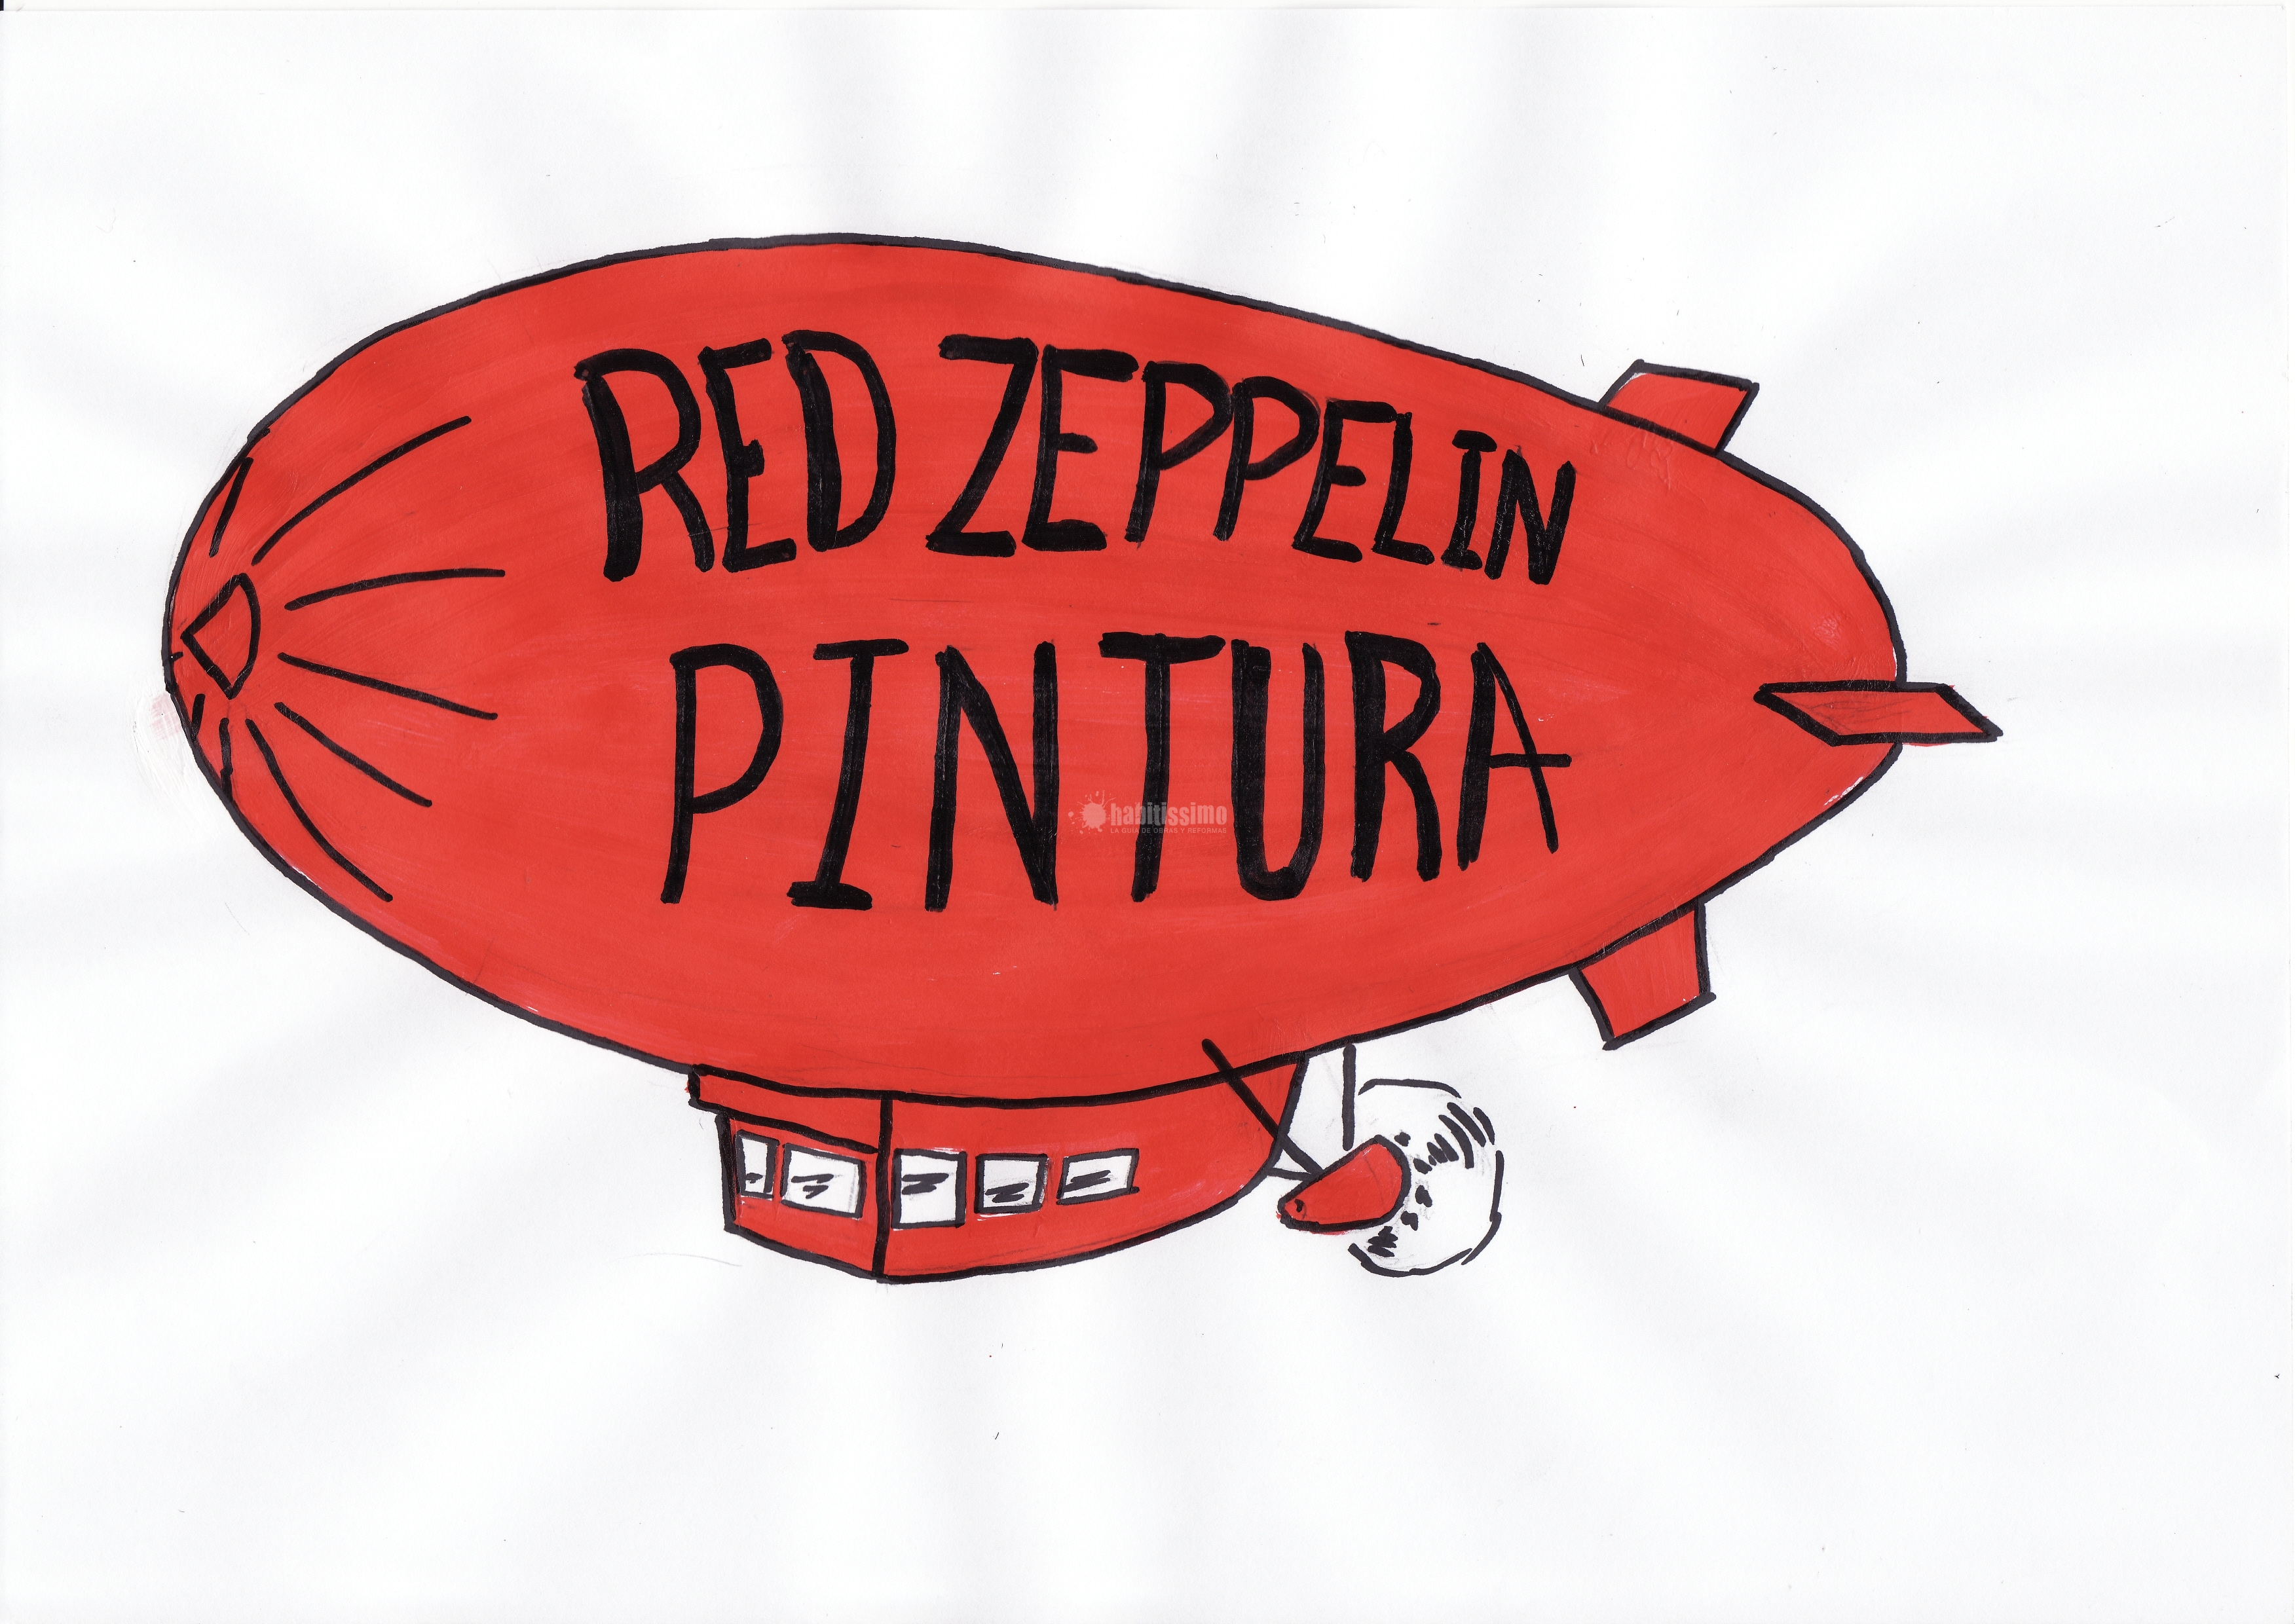 Red Zeppelin Pintura